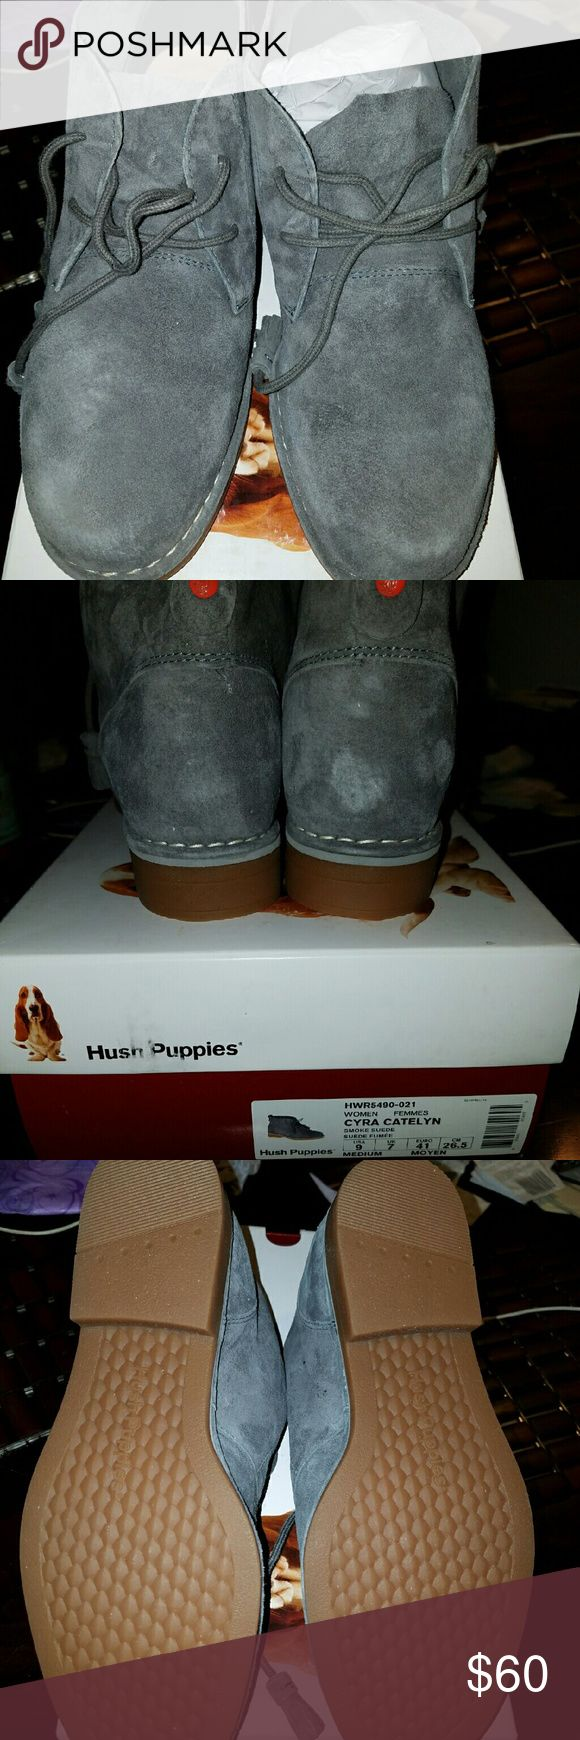 Hush Puppies Never worn, new with original box and packaging Hush Puppies Shoes Ankle Boots & Booties